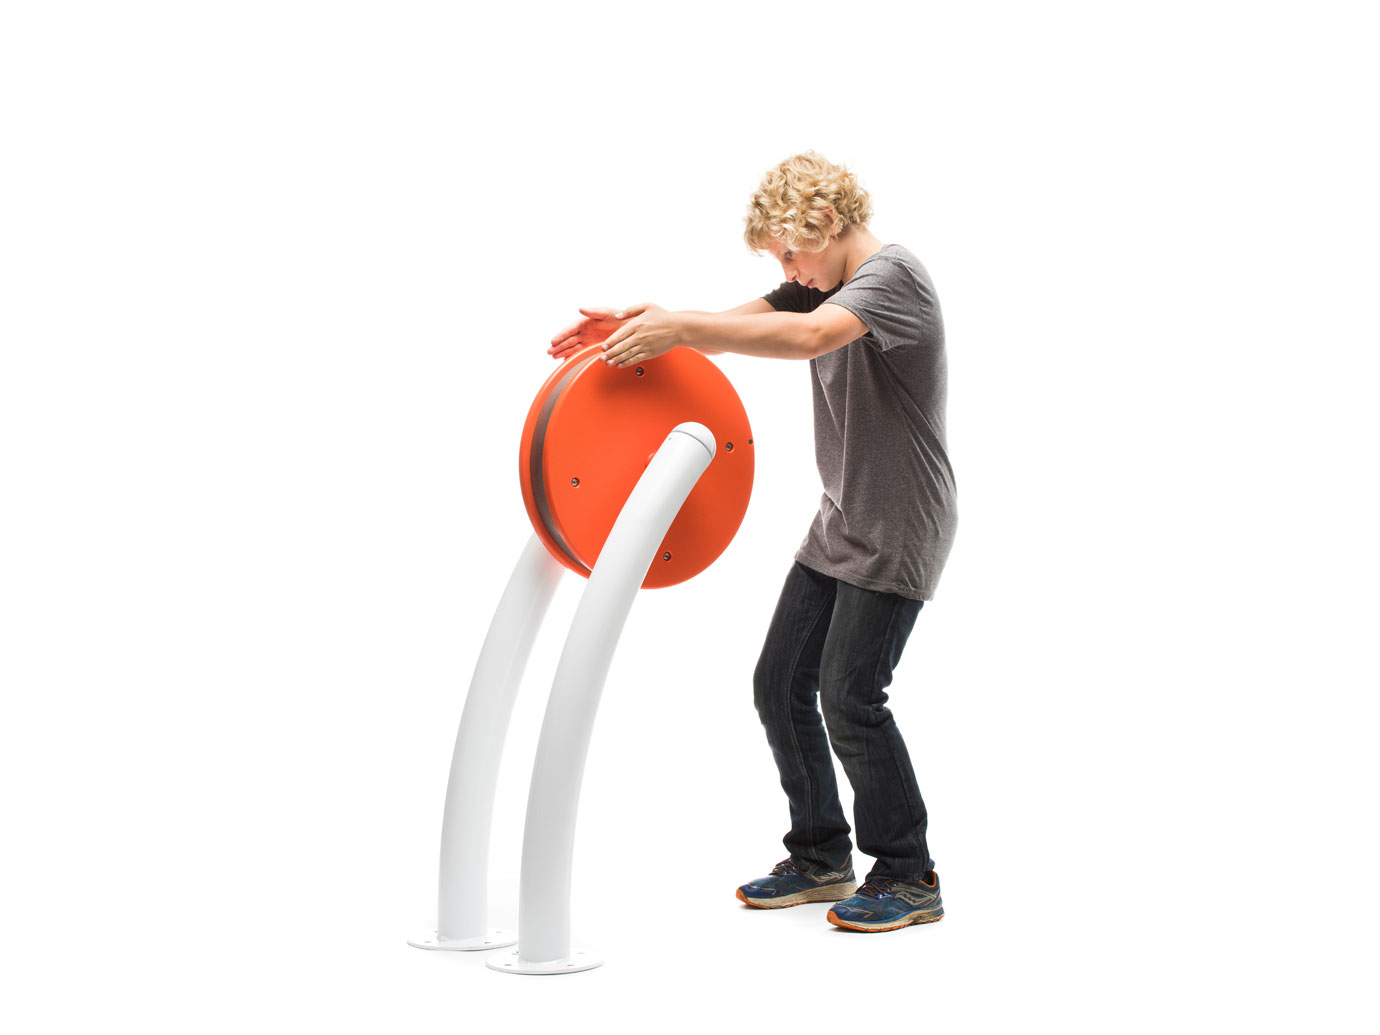 Child playing with interactive play element